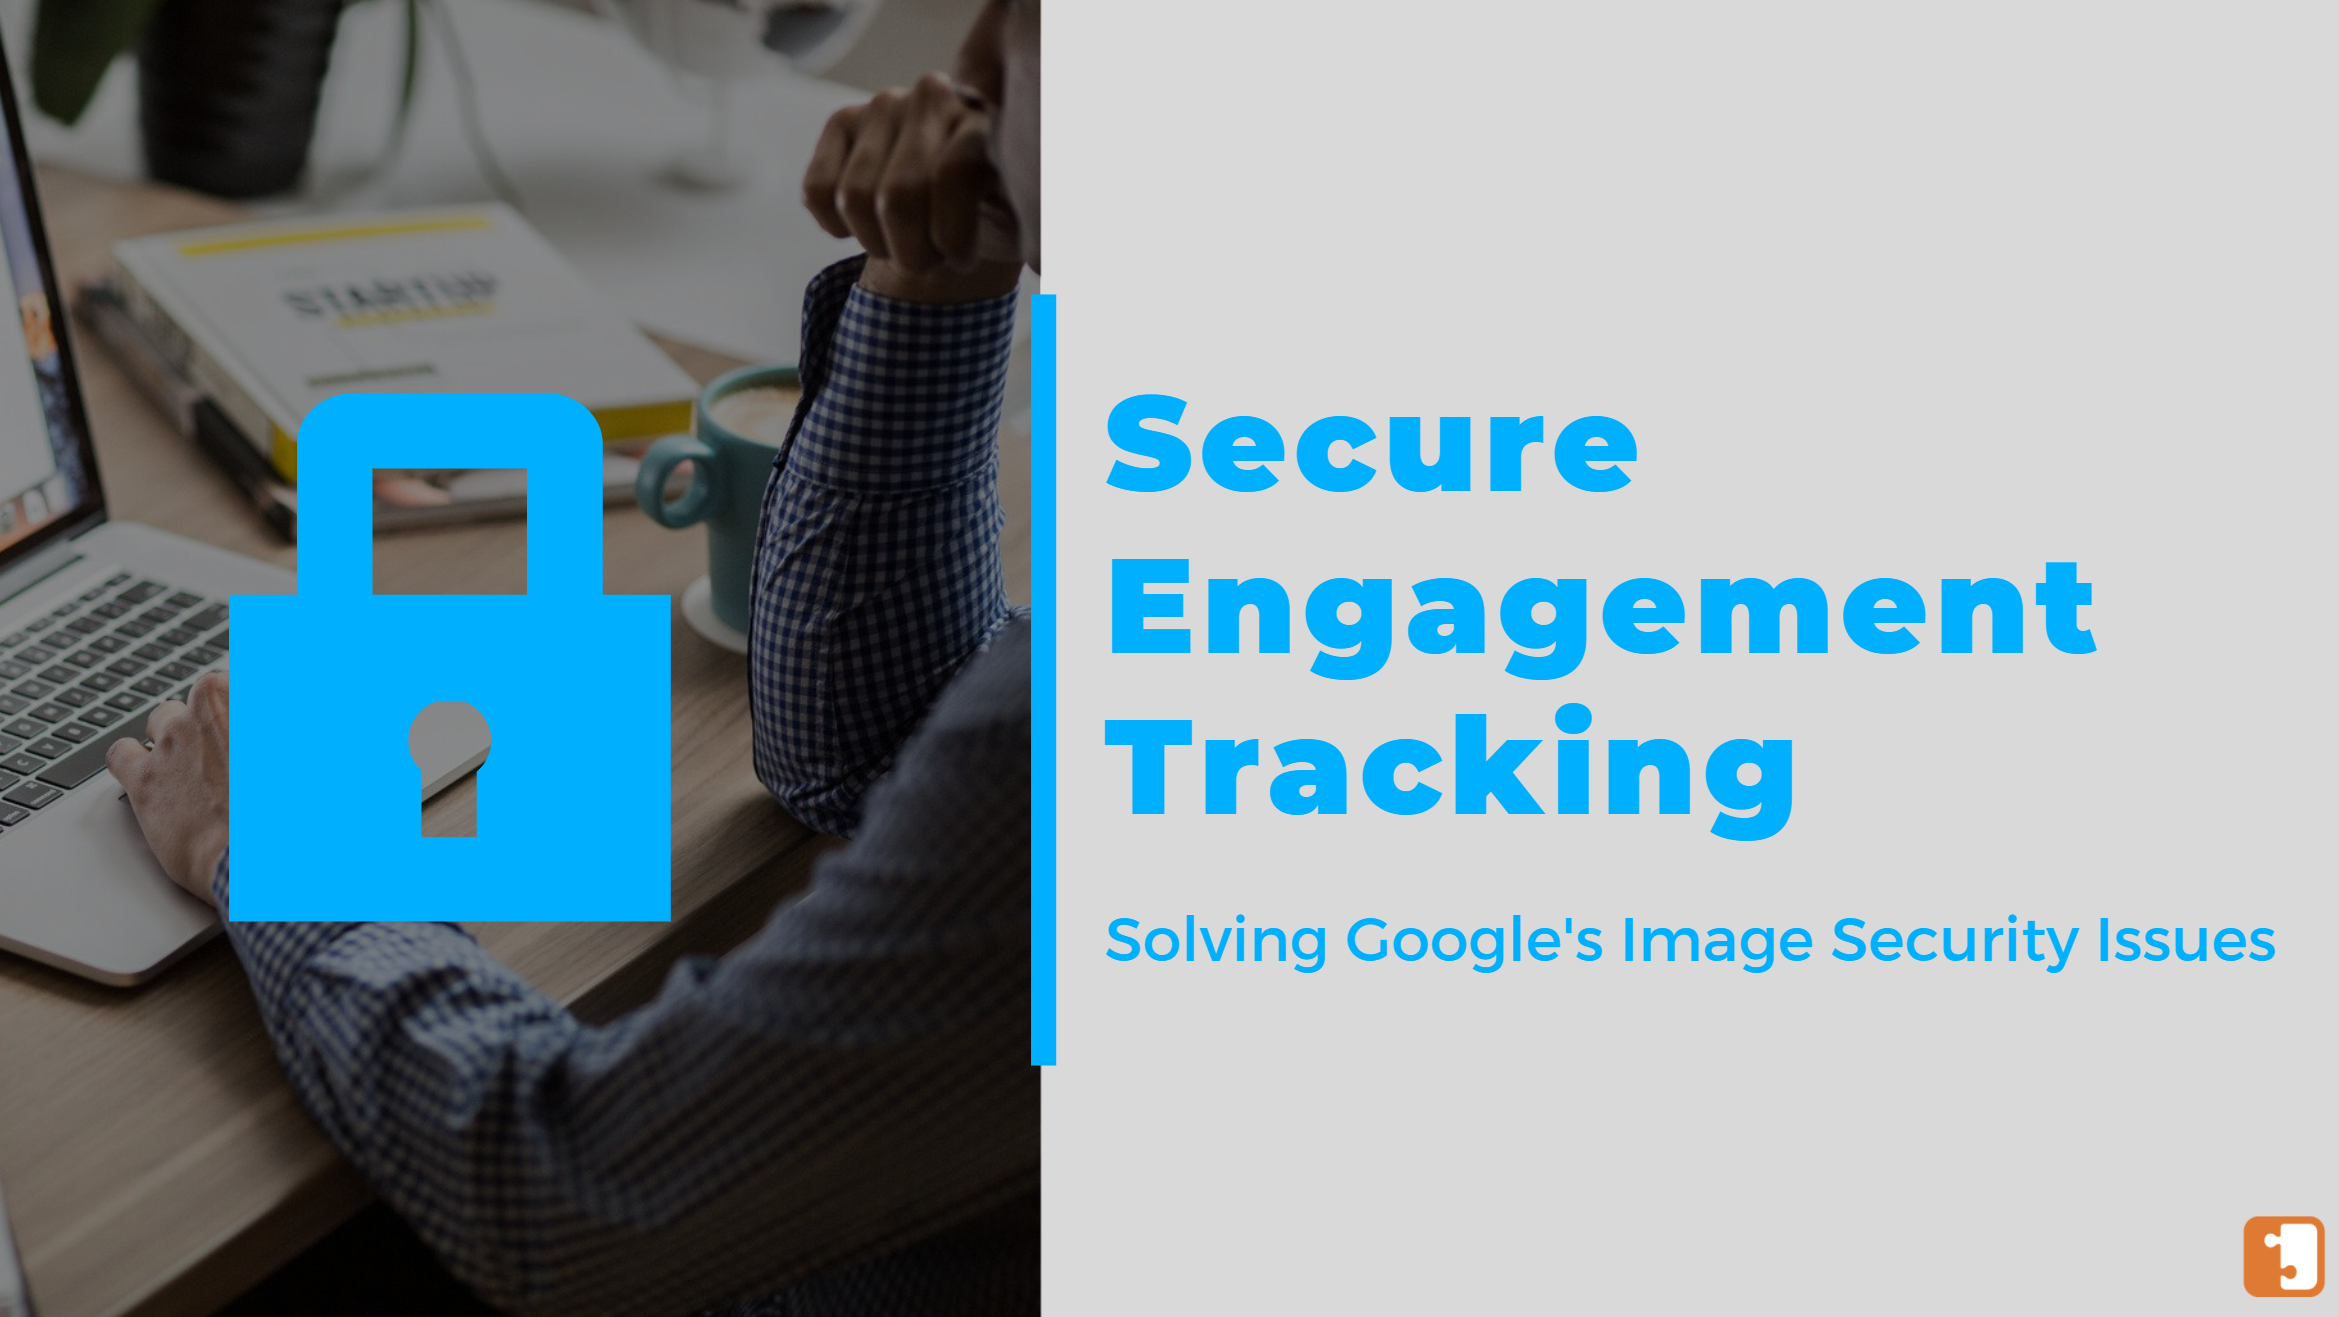 Secure Engagement Tracking Solves Chrome Image Security Issues